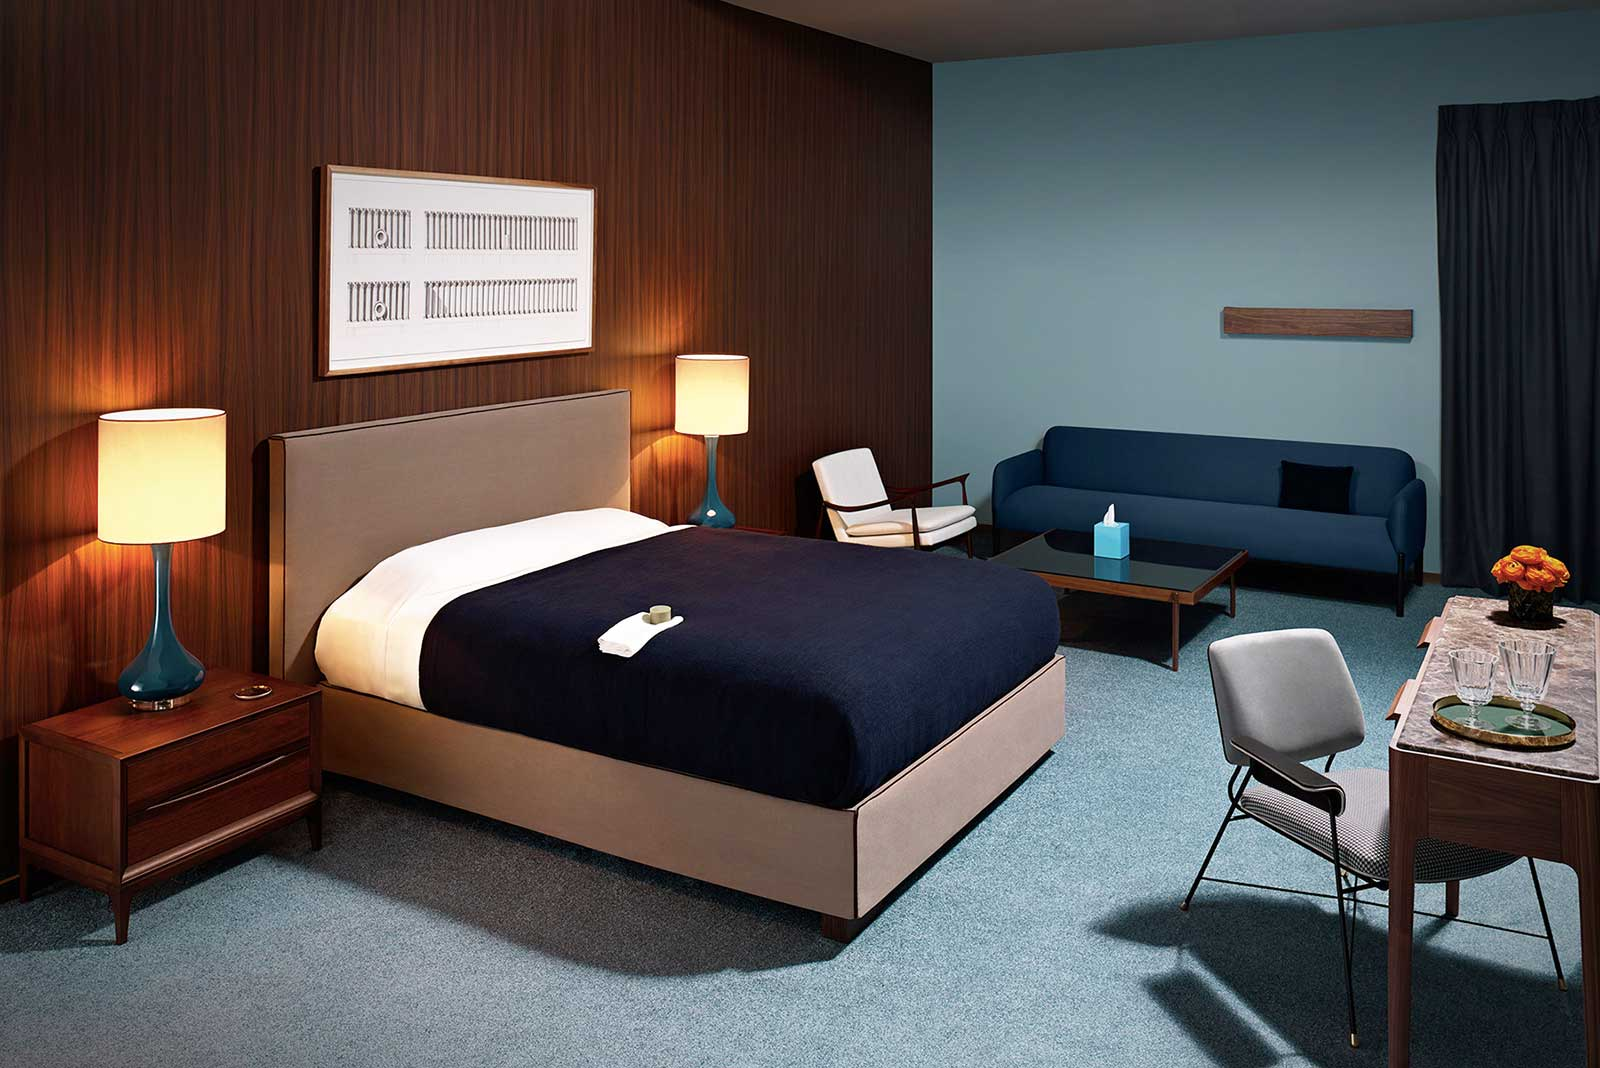 70s Motel Interior Editorial for Wallpaper* | Trendland